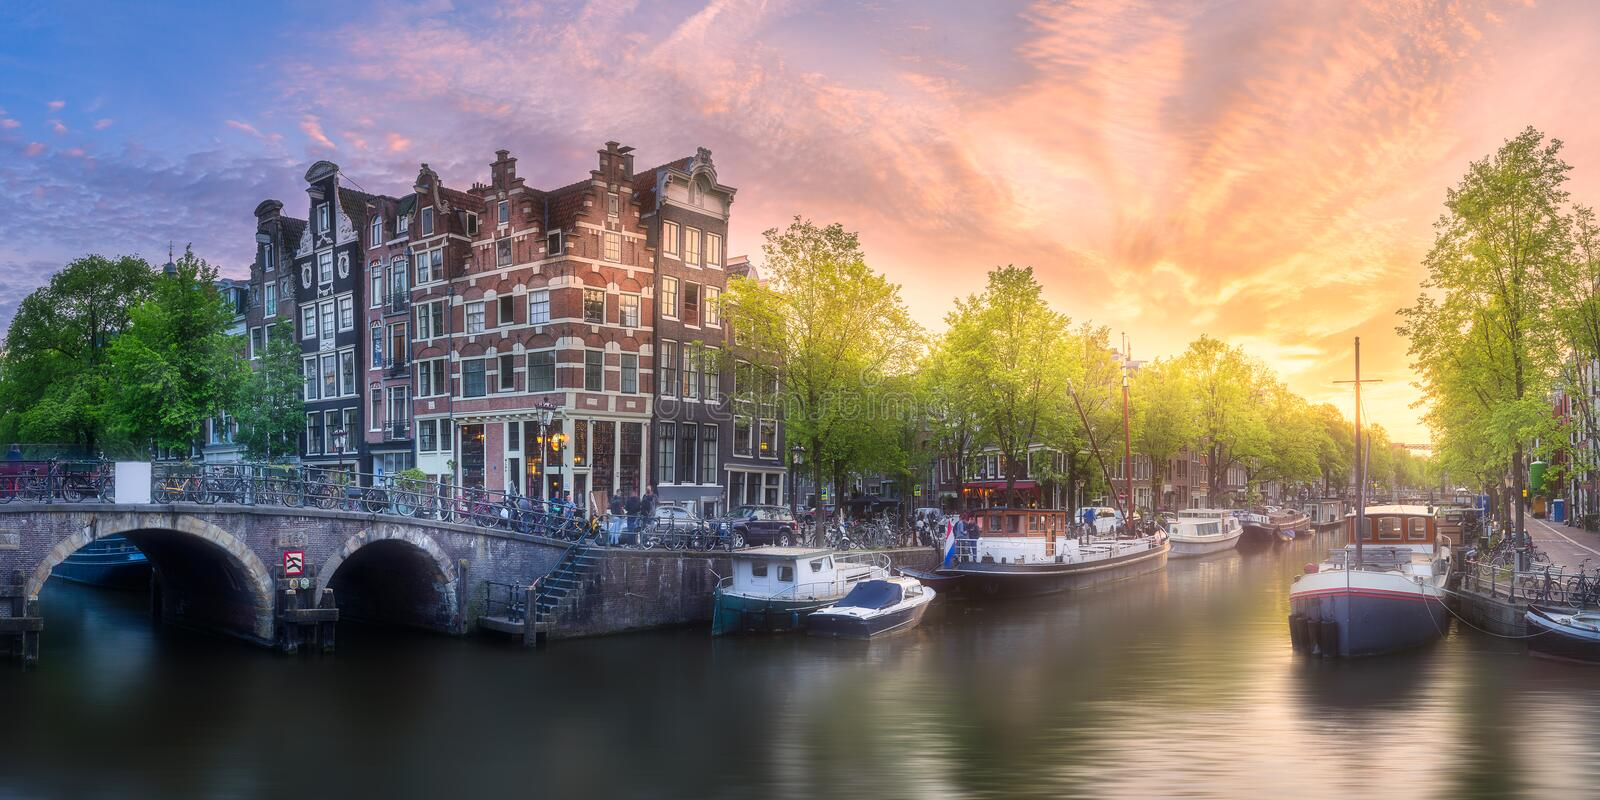 Download River, Canals And Traditional Old Houses Amsterdam Stock Image - Image of panoramic, facade: 111501181